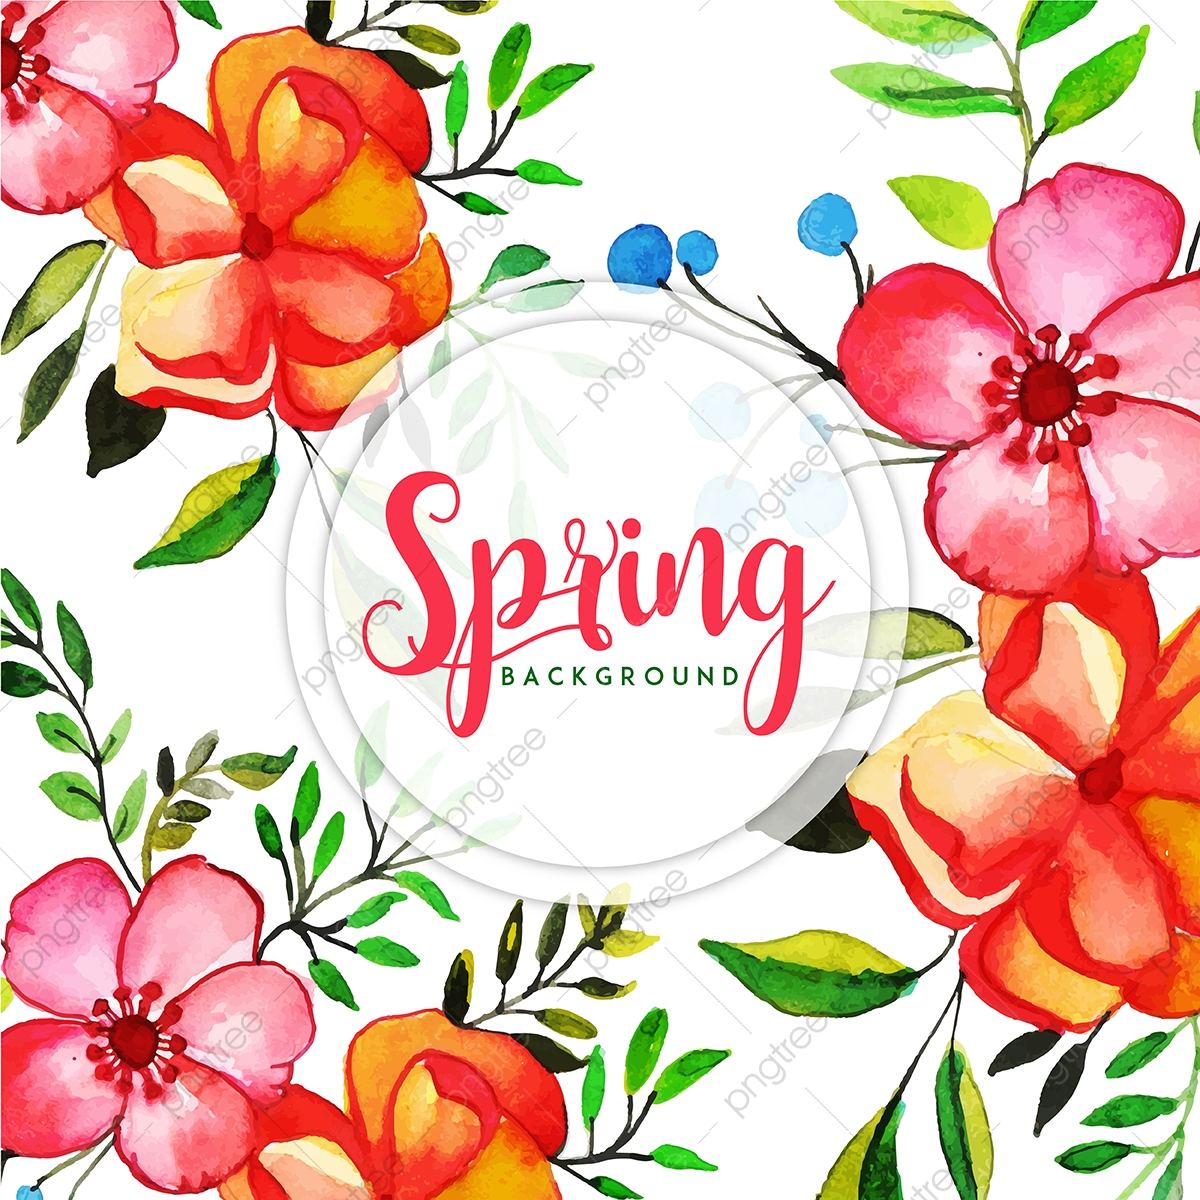 Watercolor Spring Floral Background Watercolor Color Paint Png